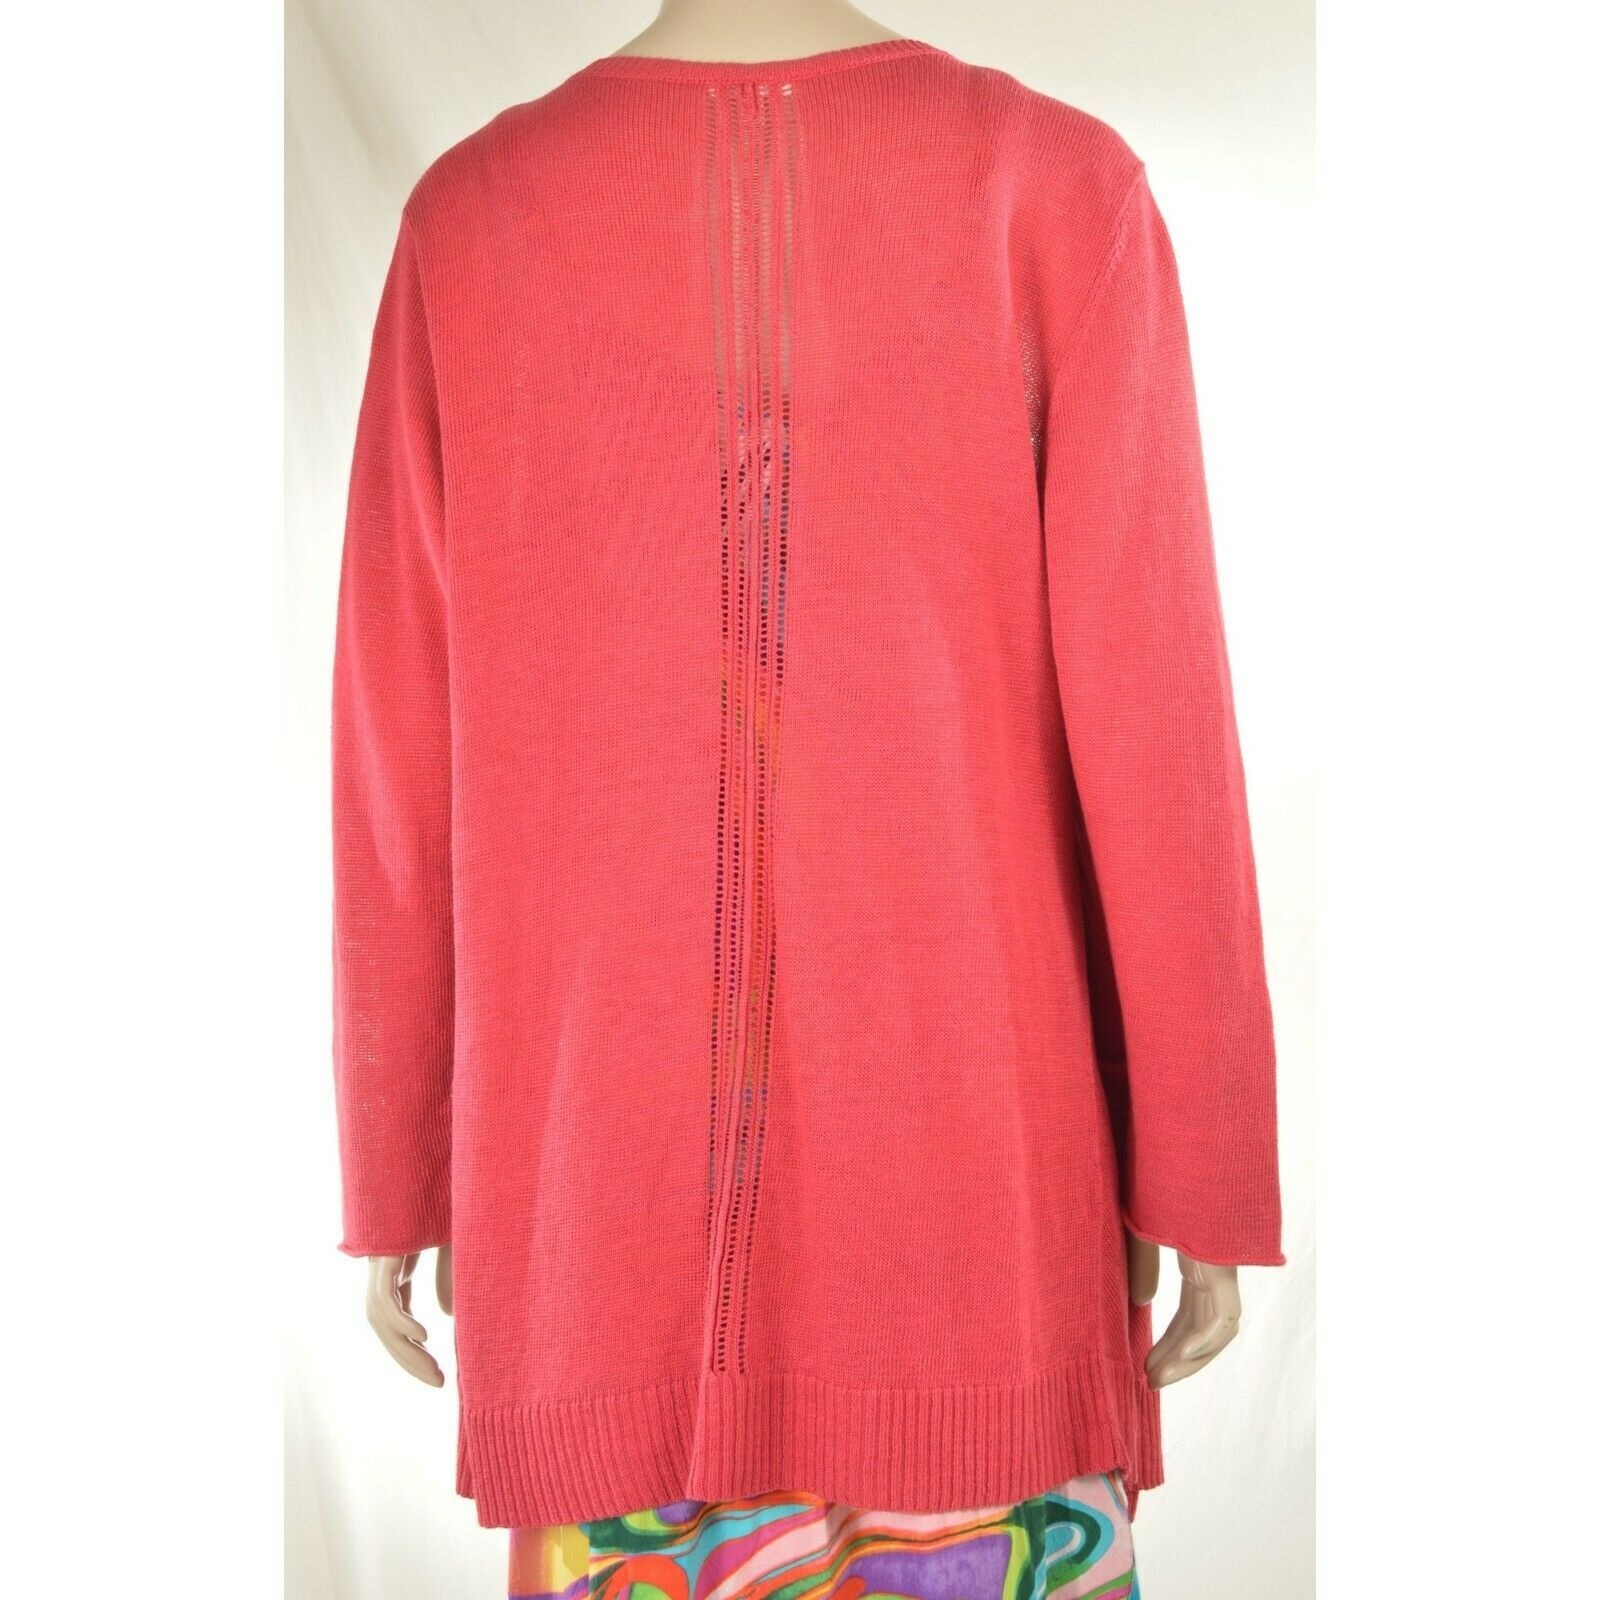 Eileen Fisher sweater cardigan SZ L soft red 100% linen knit pockets soft long s image 3